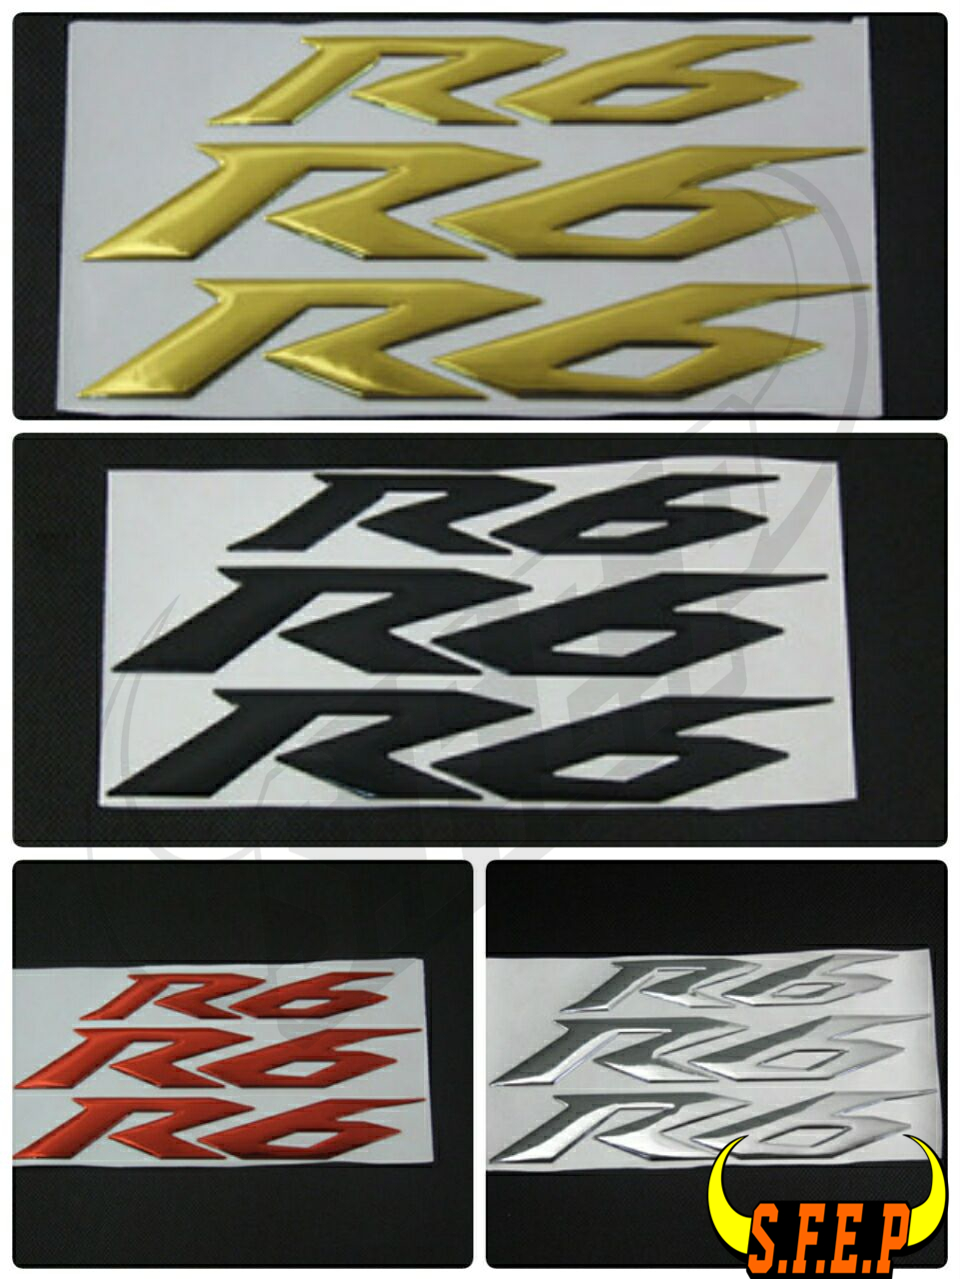 Motorcycle Emblem Badge Decal 3D Tank <font><b>Wheel</b></font> Logo For <font><b>Yamaha</b></font> <font><b>R6</b></font> <font><b>Sticker</b></font> image